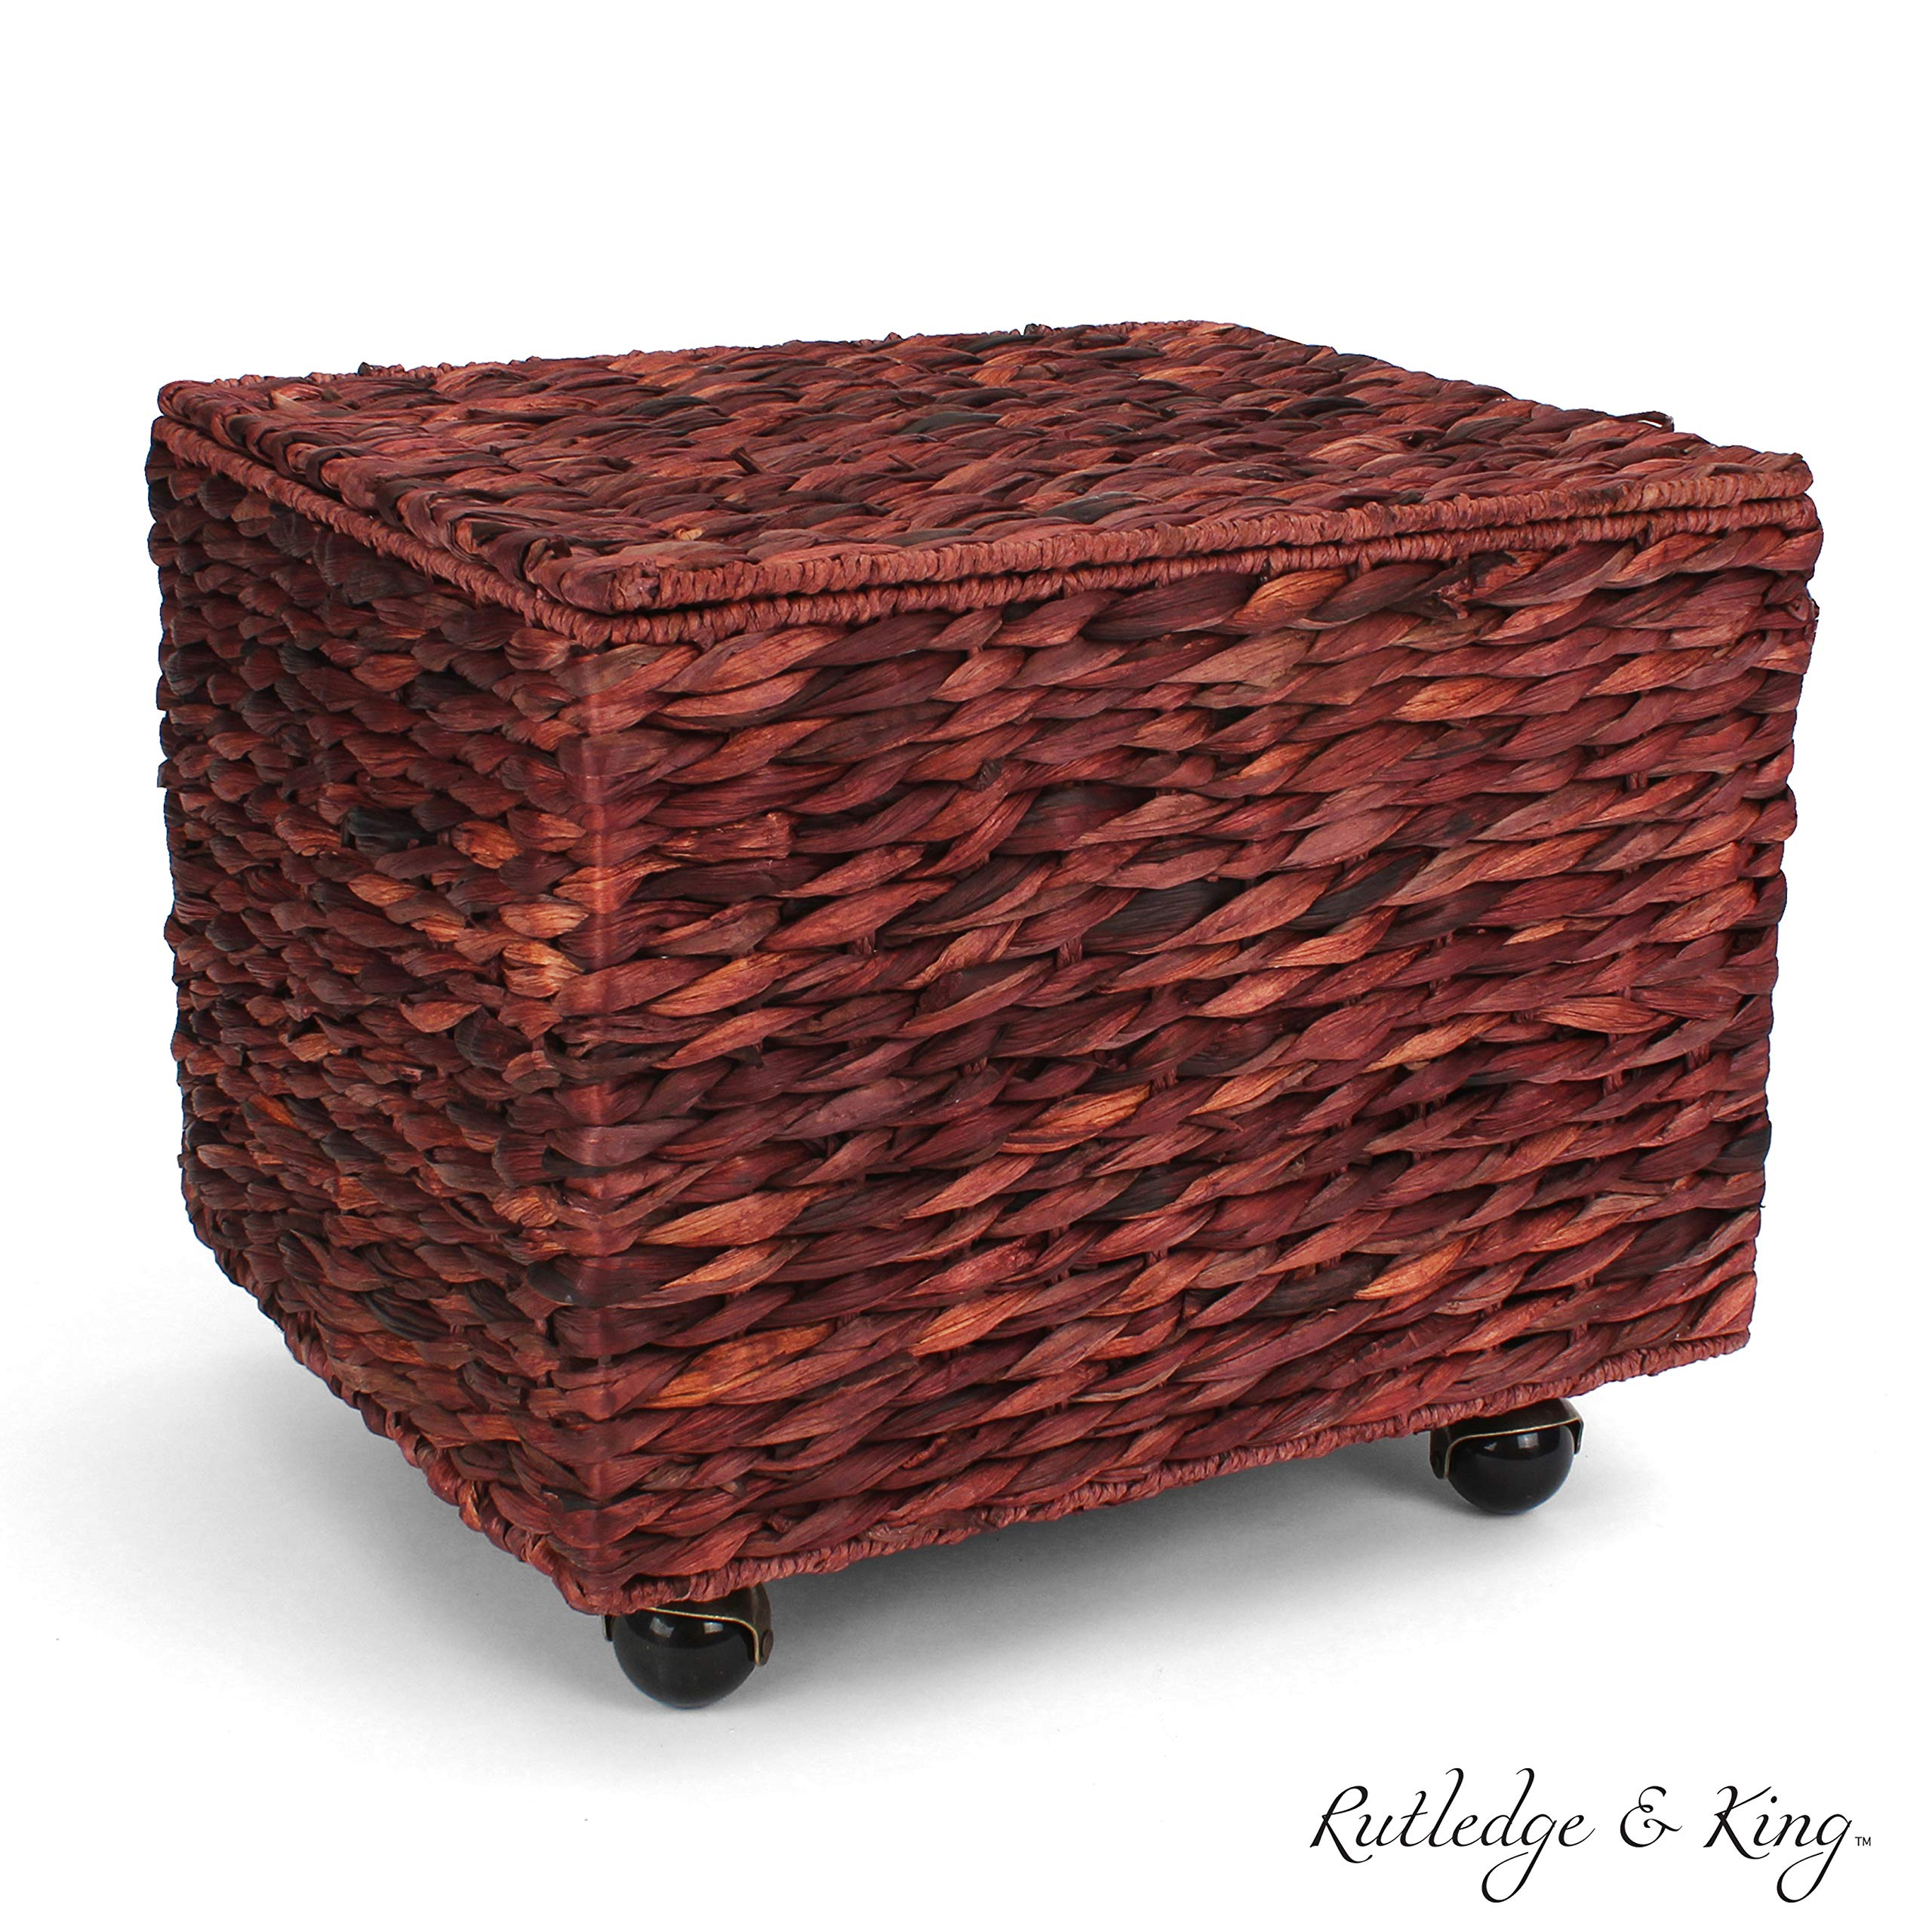 Seagrass Rolling File Cabinet - Home Filing Cabinet - Hanging File Organizer - Home and Office Wicker File Cabinet - Water Hyacinth Storage Basket for File Storage (Russet Brown)